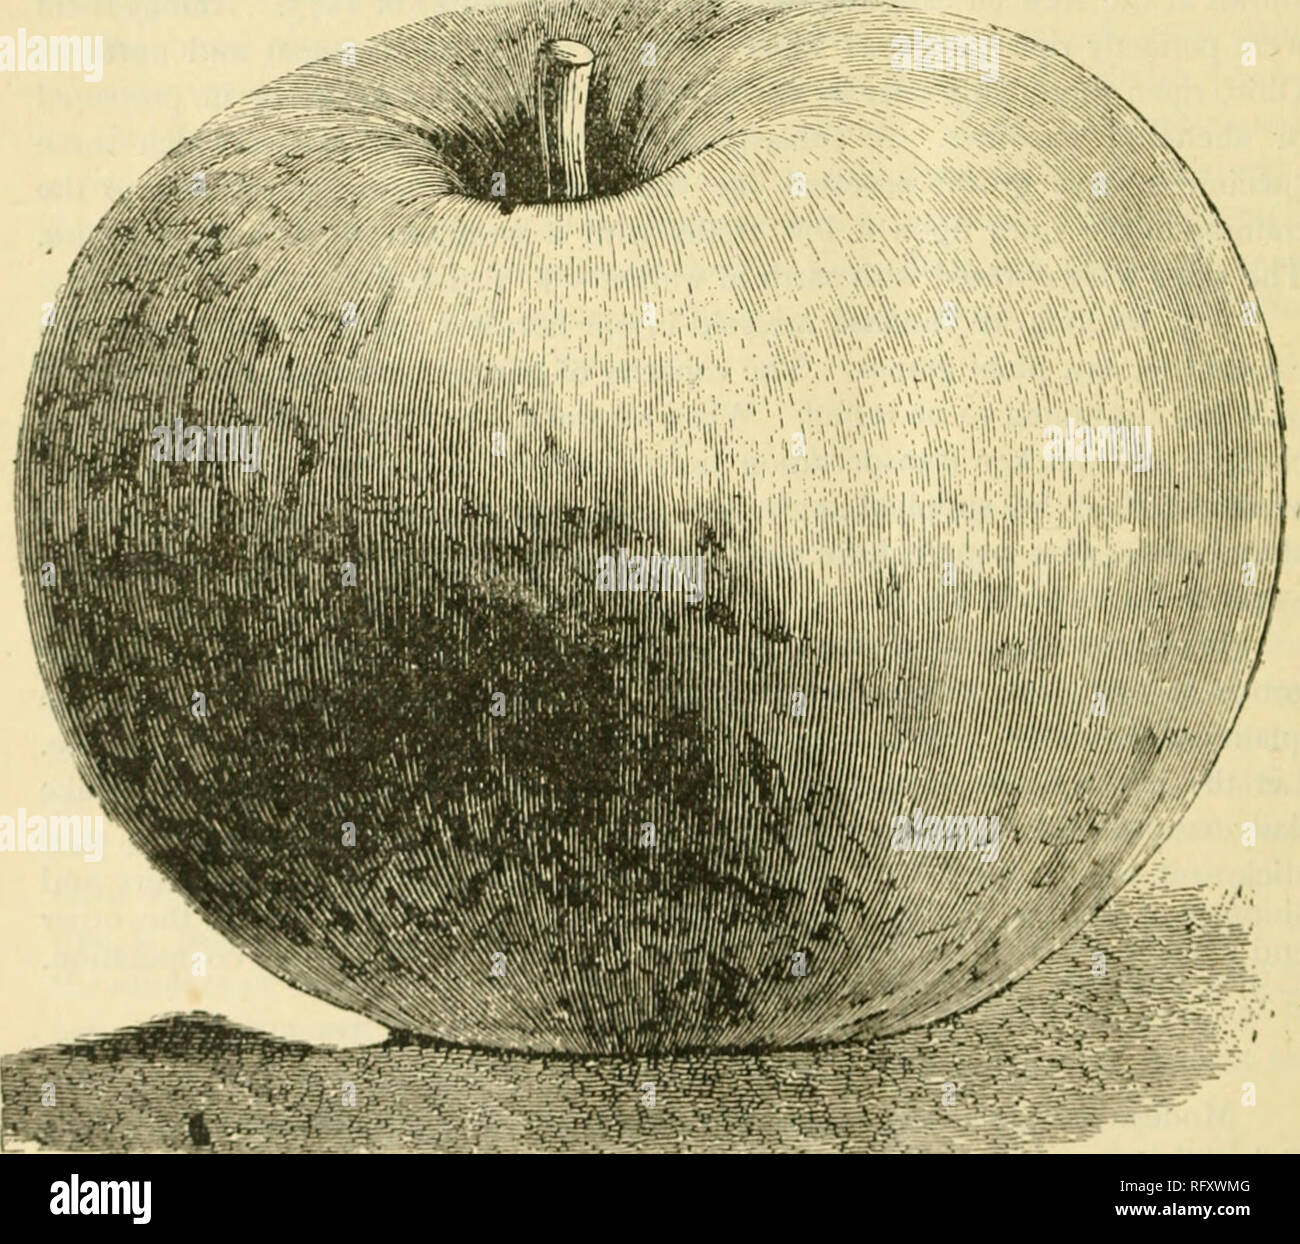 . The Canadian horticulturist [monthly], 1892. Gardening; Canadian periodicals. ^ jsf^U: arid Little Kqc)Loi) frbWs ^ FOREIGN FRUITS. ' Sir,—I send you by express two baskets containing six varieties of apples and nine varieties of pears. The pear narneil Wilinot was ))rouglit from Toronto to Newcastle about seventy years ago by the late Mr. VViliiiot and was named after him. Do you know what variety it is ? J. D. Kouerts, Cohounj, Ont. The interesting packages of fruit from our successful amateur fruit grower, Mr. J. D. Roberts, includes the following varieties. Pears:—Beurre Chaudry> Beur - Stock Image